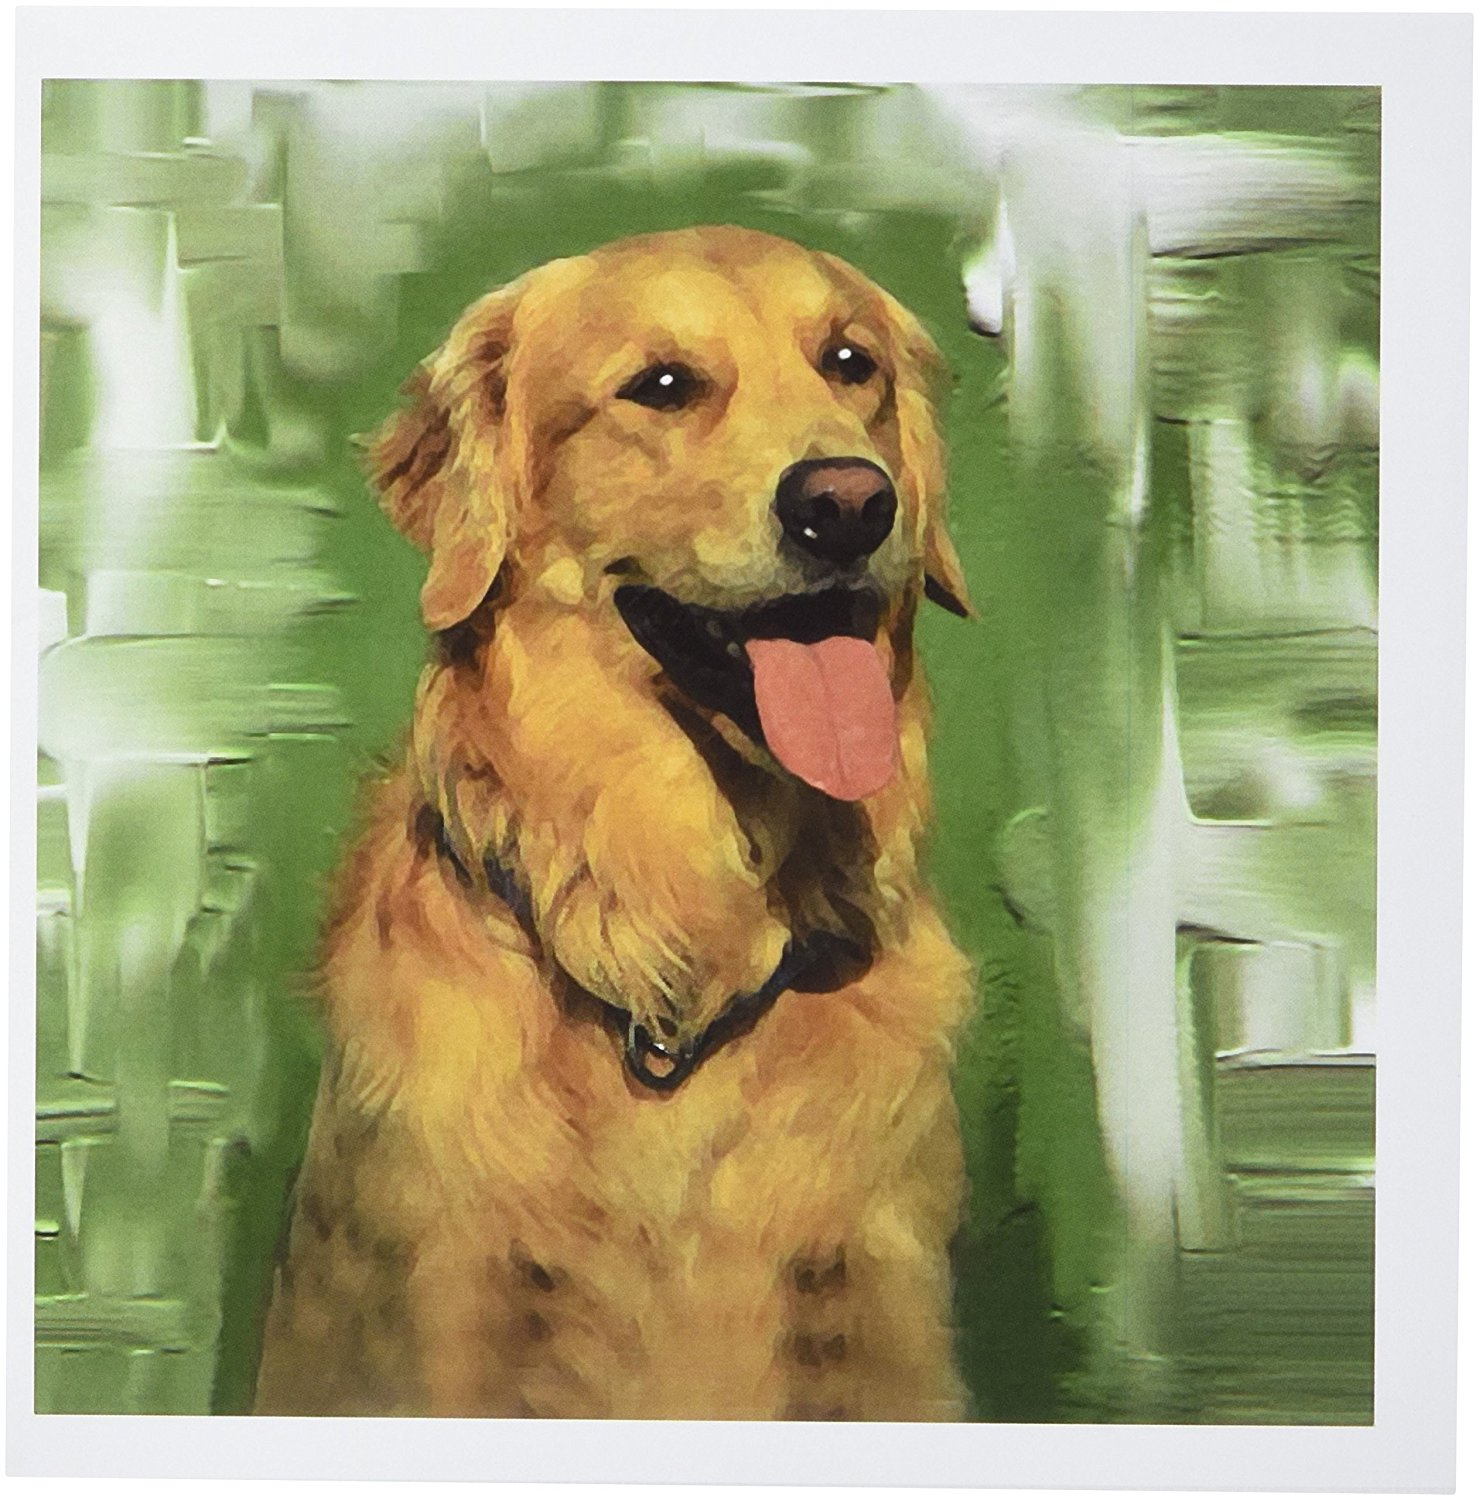 Cheap golden greeting cards find golden greeting cards deals on get quotations 3drose golden retriever greeting cards set of 12 gc40222 m4hsunfo